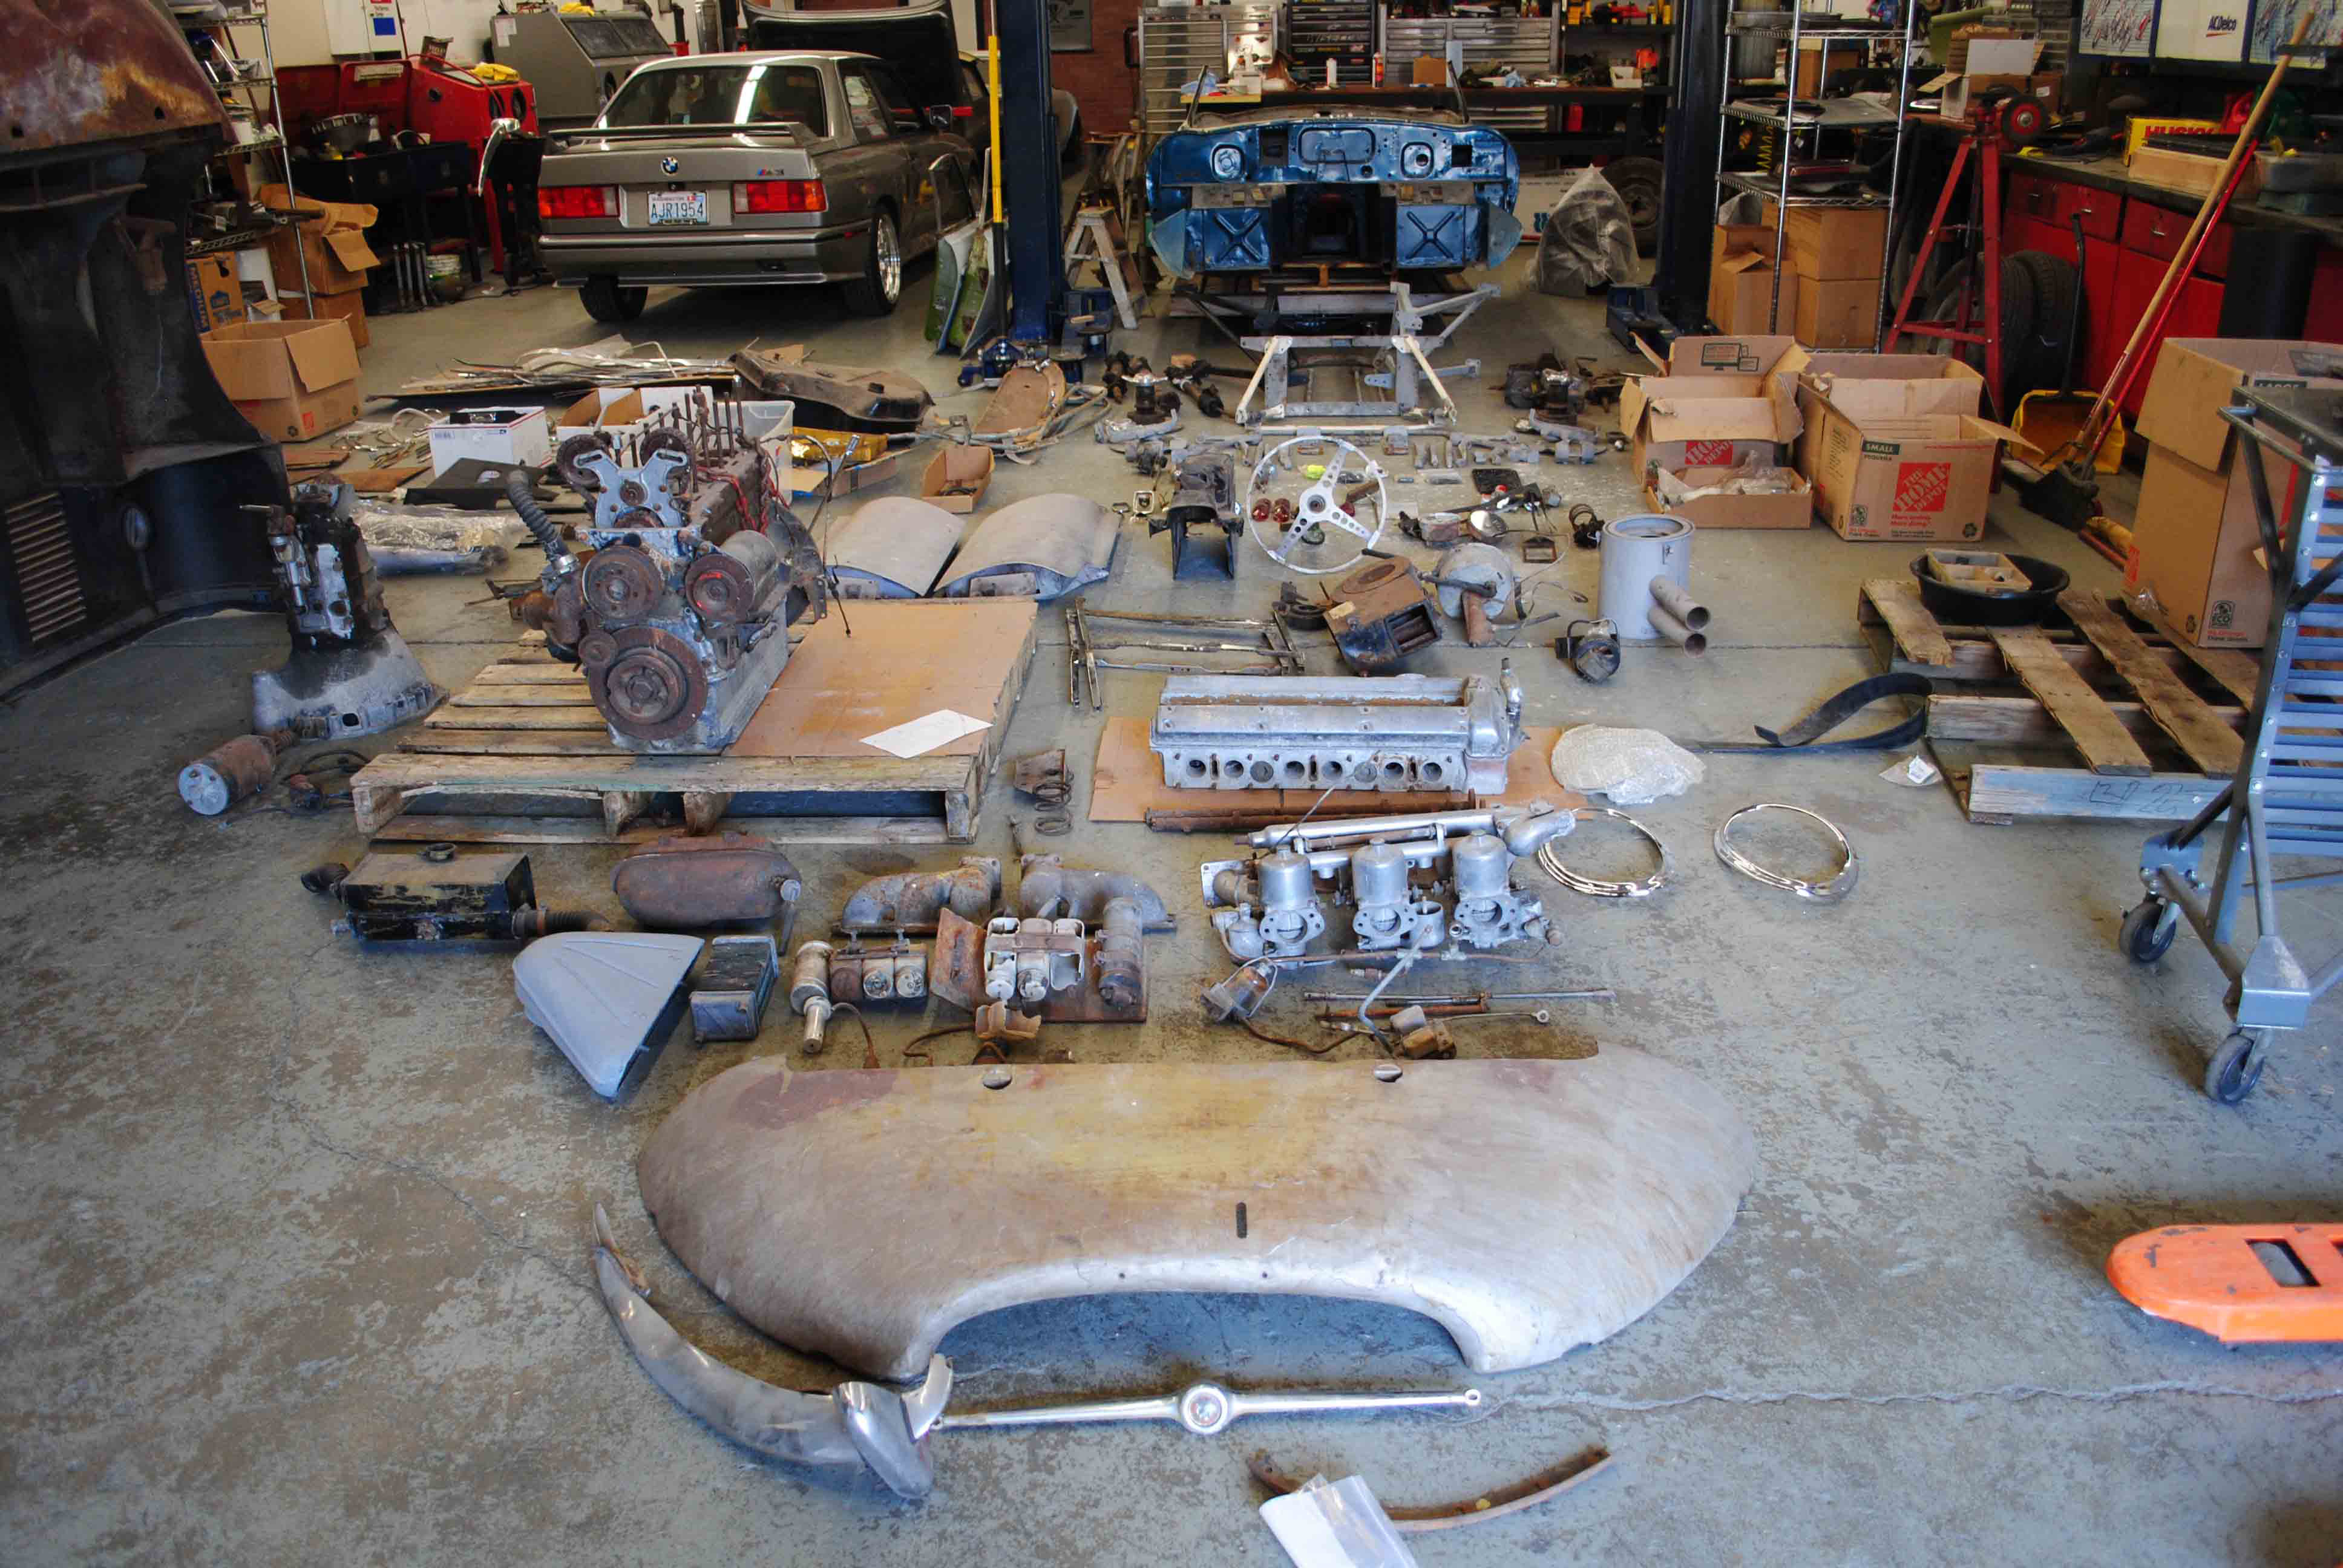 Barons has 1963 Jag E-type restoration project on docket | ClassicCars